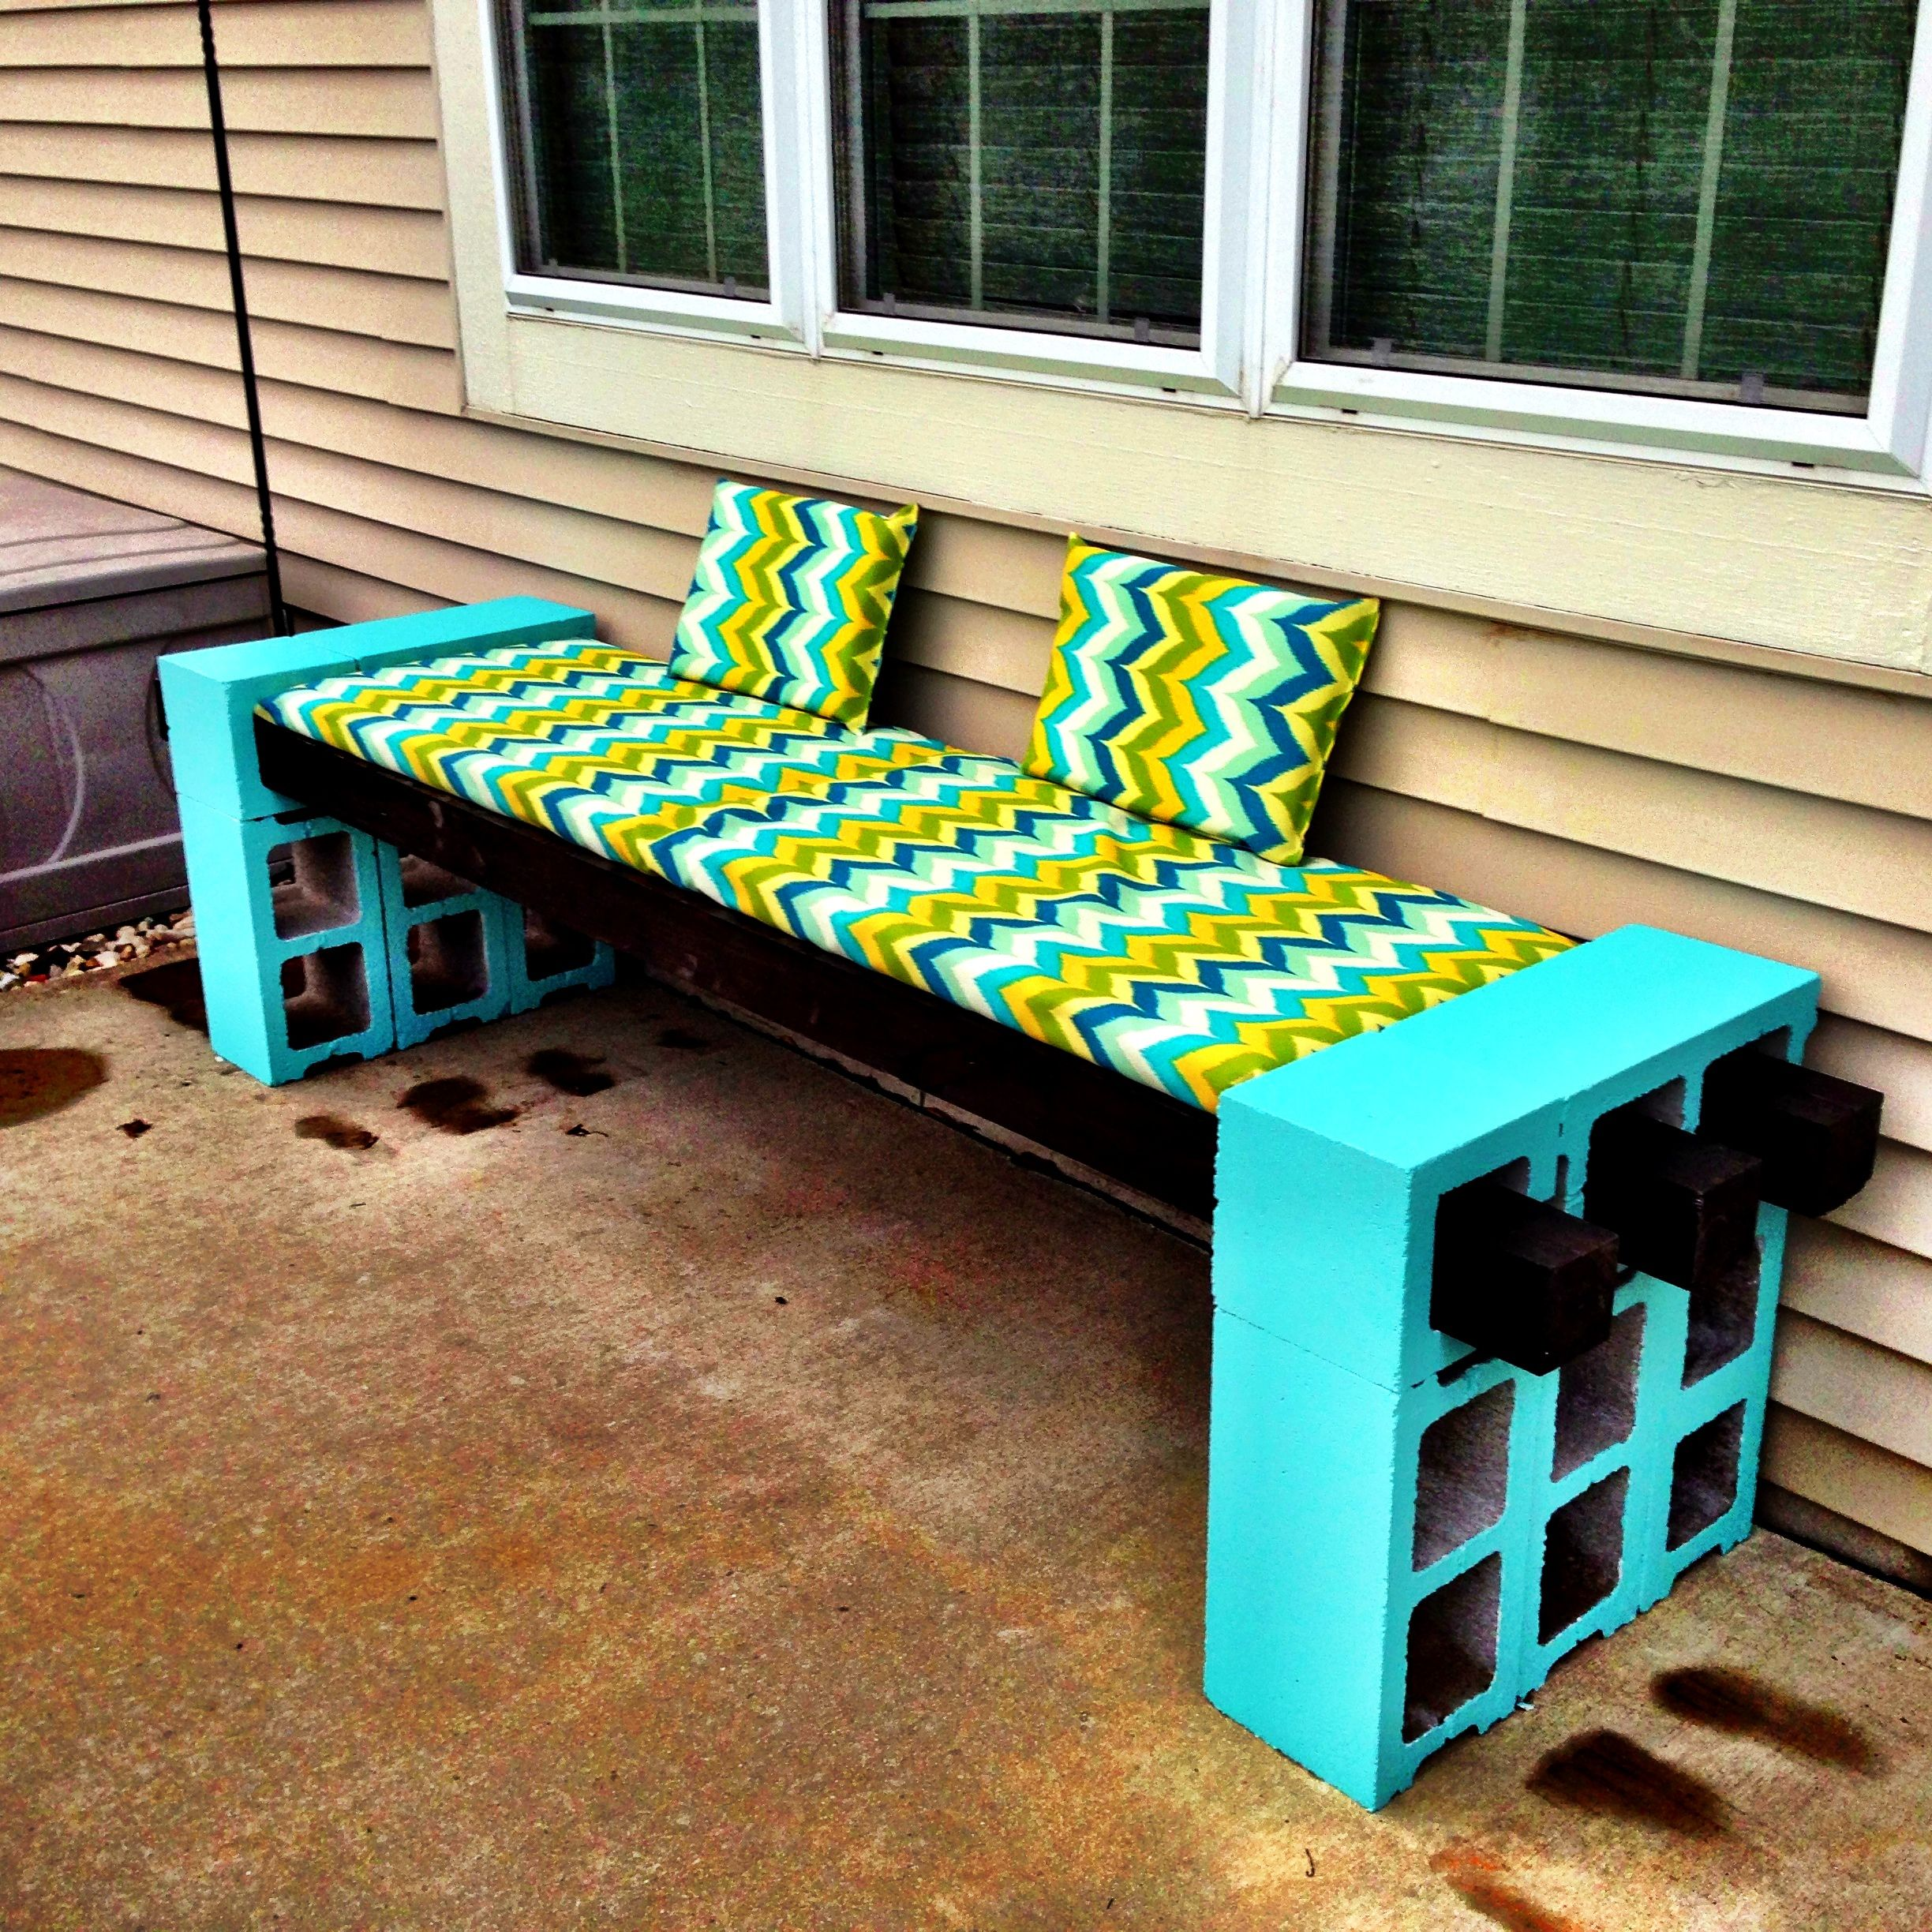 Design Cinder Block Bench decoration wonderful and also new cinder block bench blended with amazing our bench